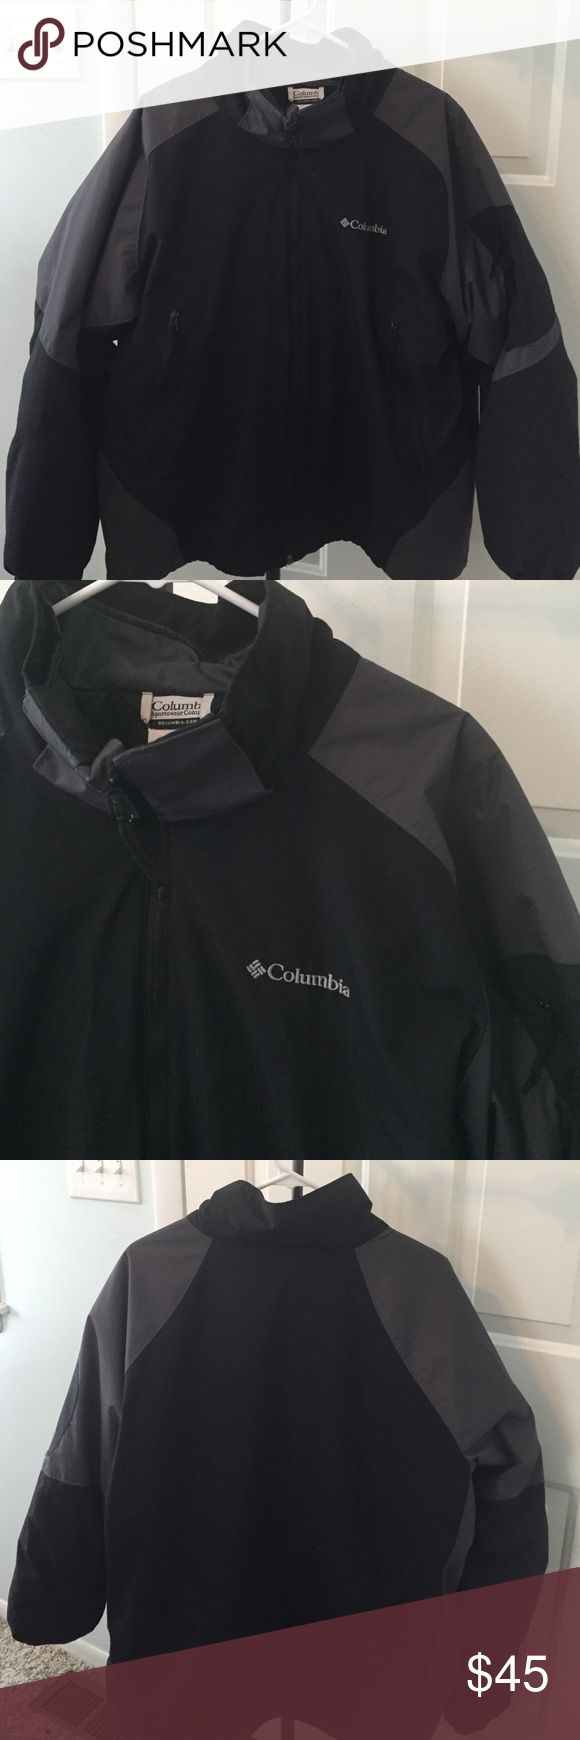 Columbia Men's 3-in-1 Interchange jacket XL men's 3-in-1 interchange Columbia jacket.  Does not have the hood that attaches.  Black/gray.  In GUC.  Pic of removed inner jacket is last pic. Columbia Jackets & Coats